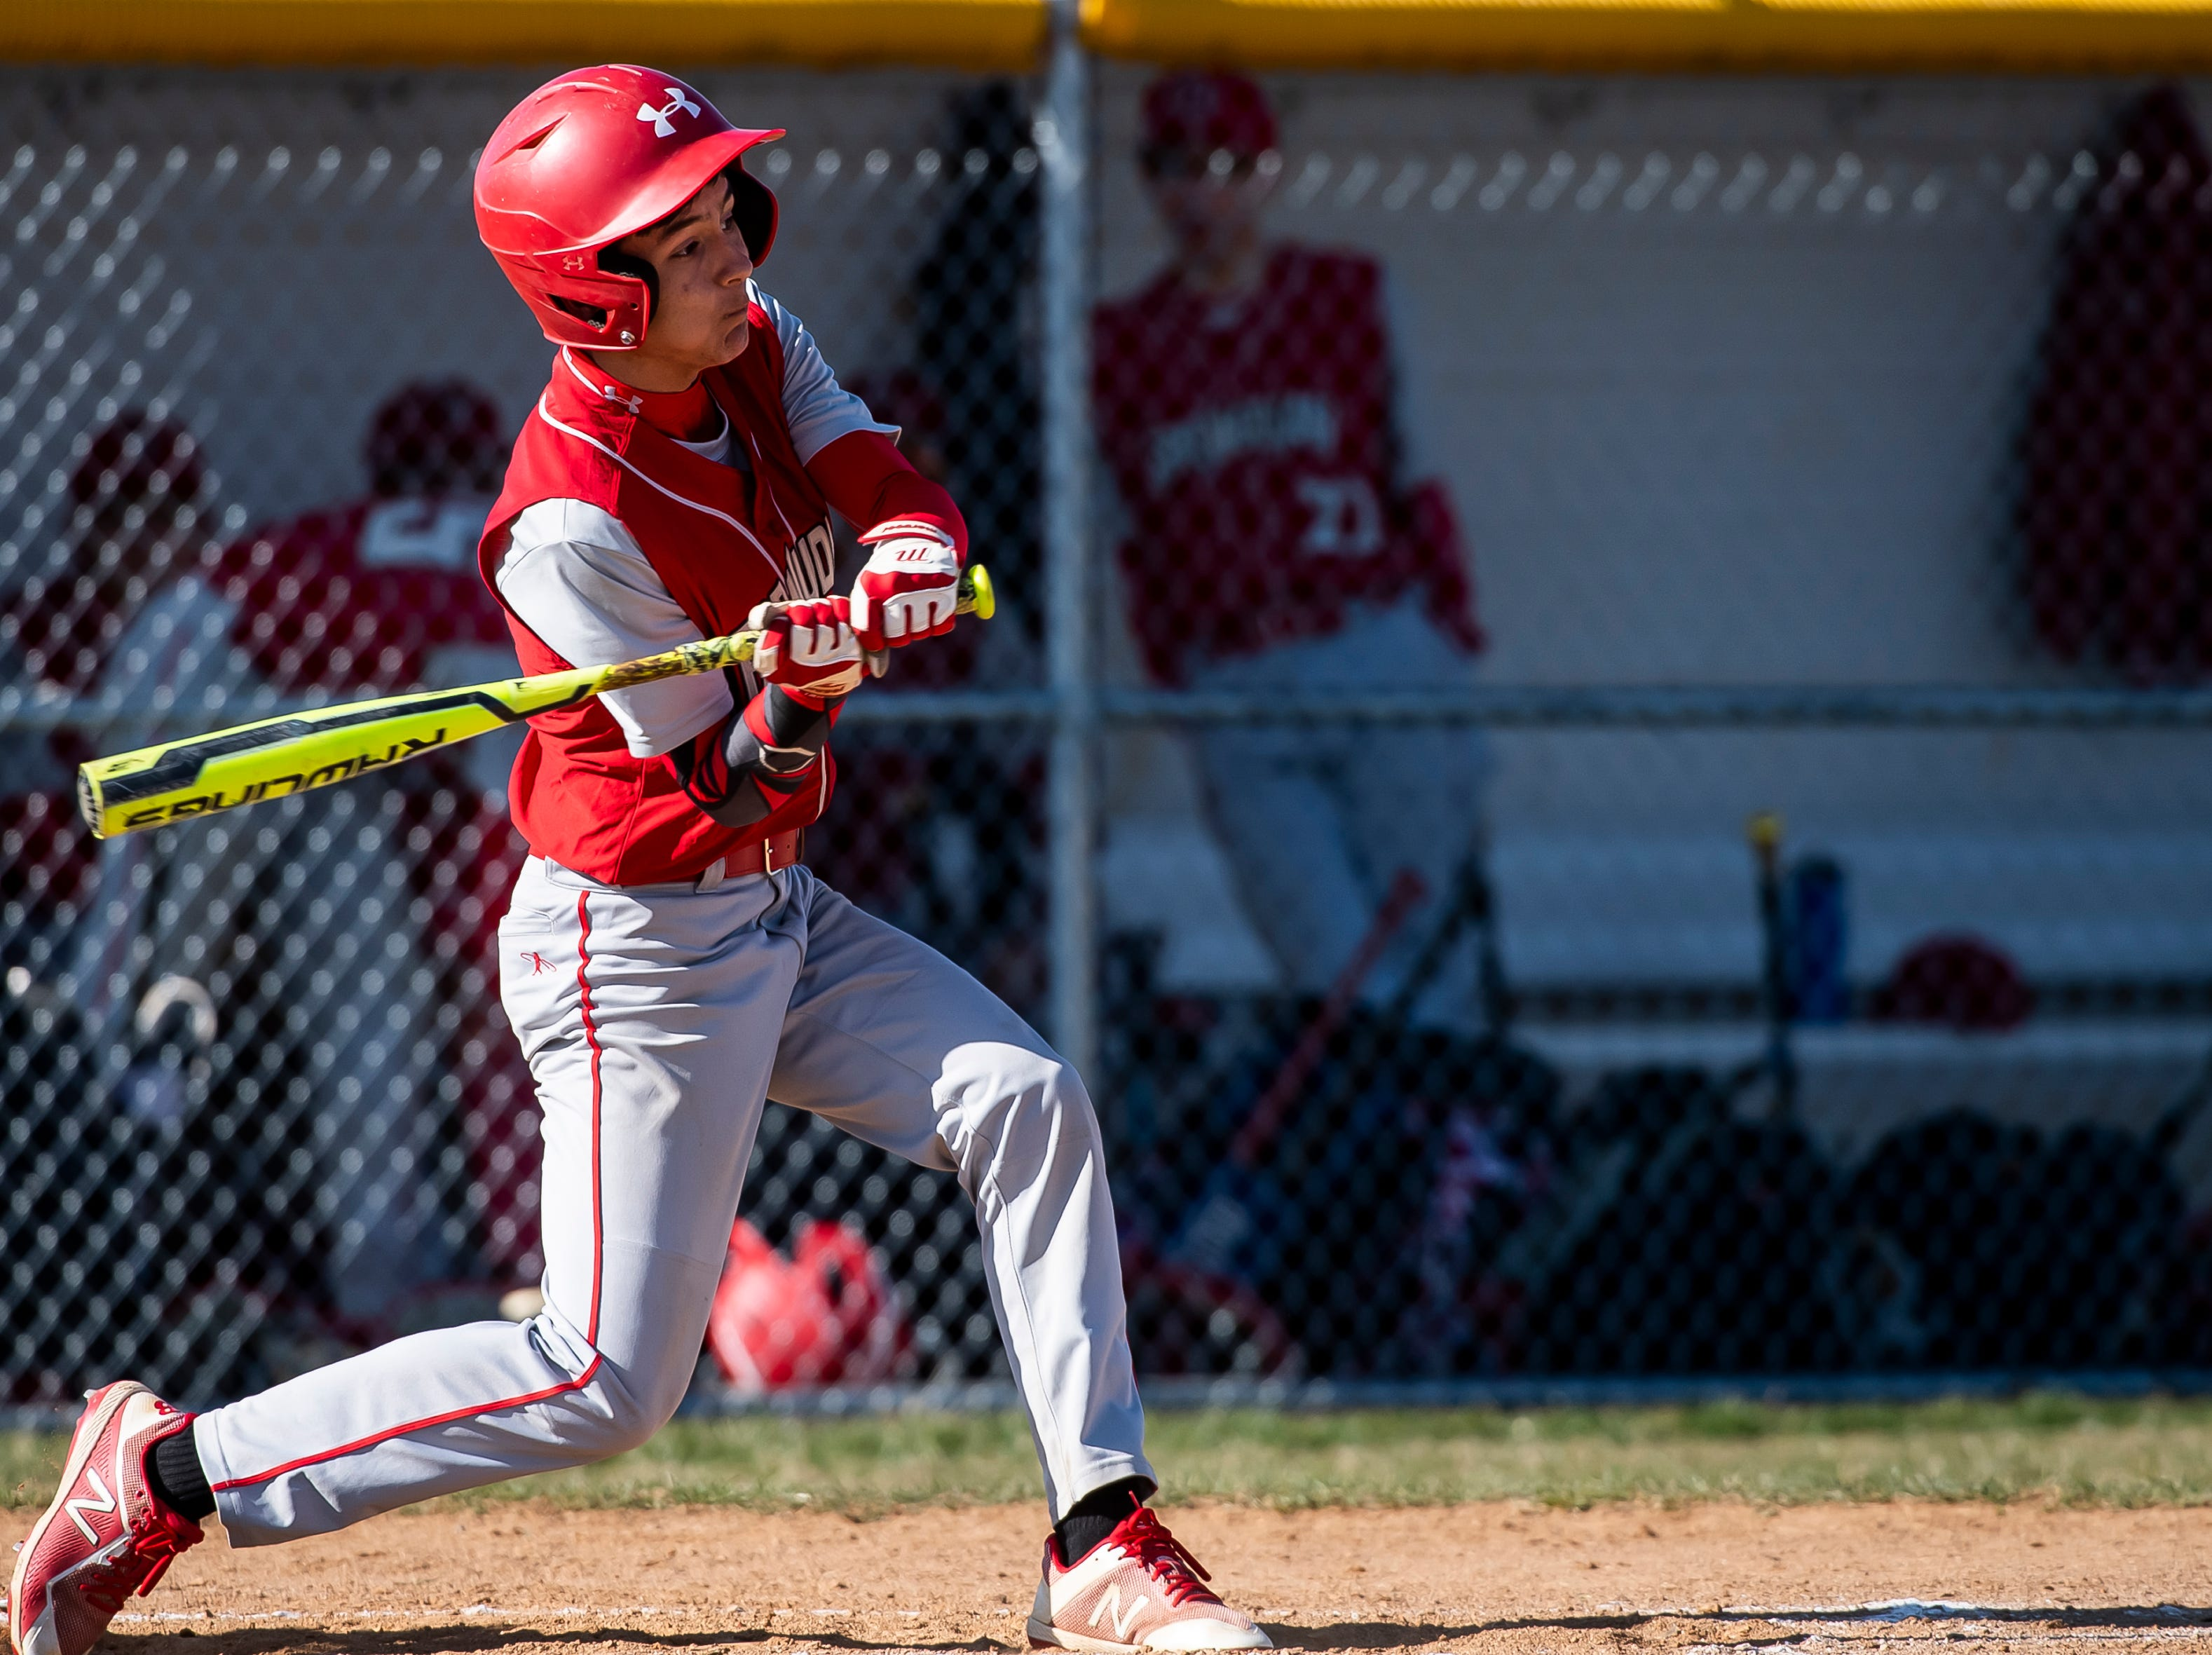 Bermudian Springs' Justice Taylor swings at a pitch during a YAIAA baseball game against West York on Wednesday, April 3, 2019. The Eagles fell 14-11.